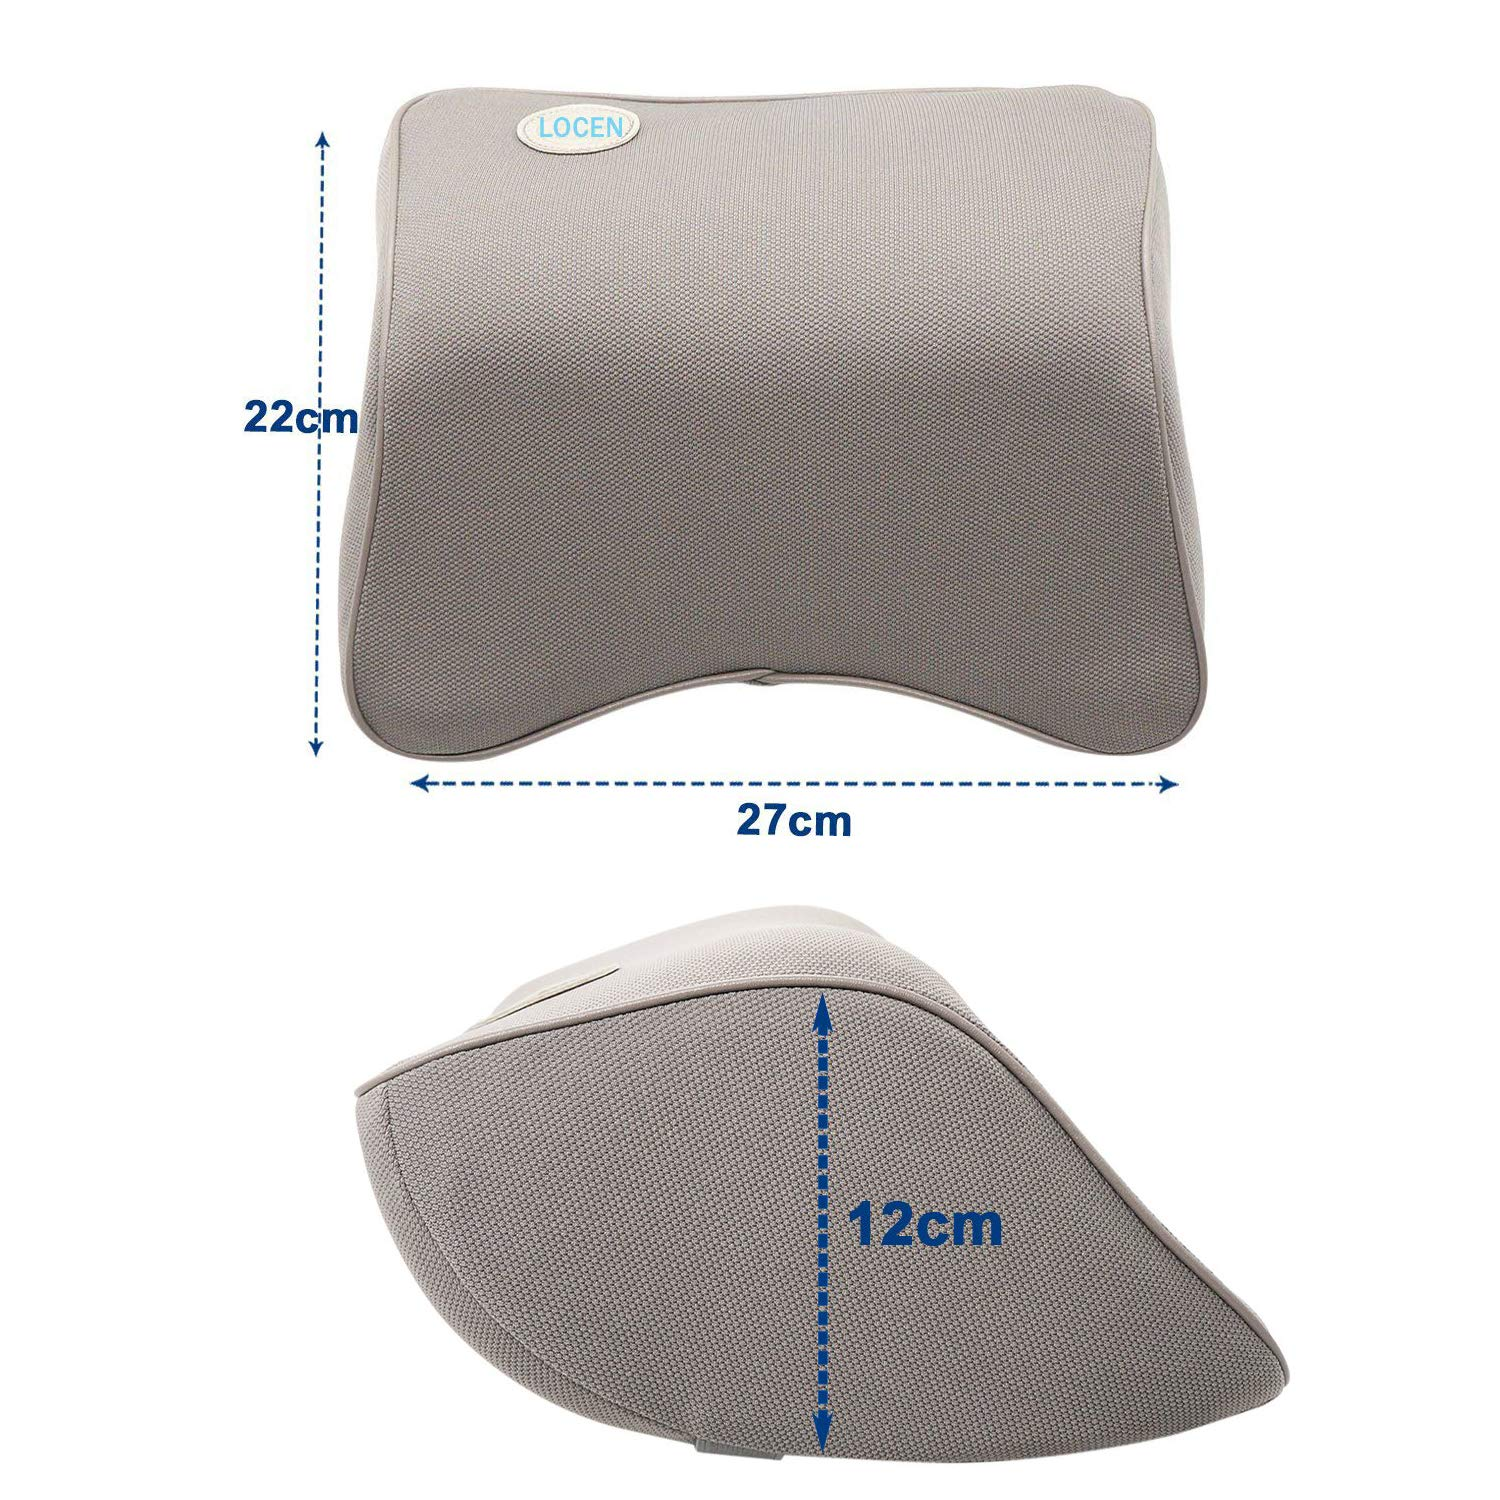 LOCEN Memory Foam Car Cushion Neck Support Travel Pillow Fits Car Home Office Chair - Comfort Breathable Mesh - Grey